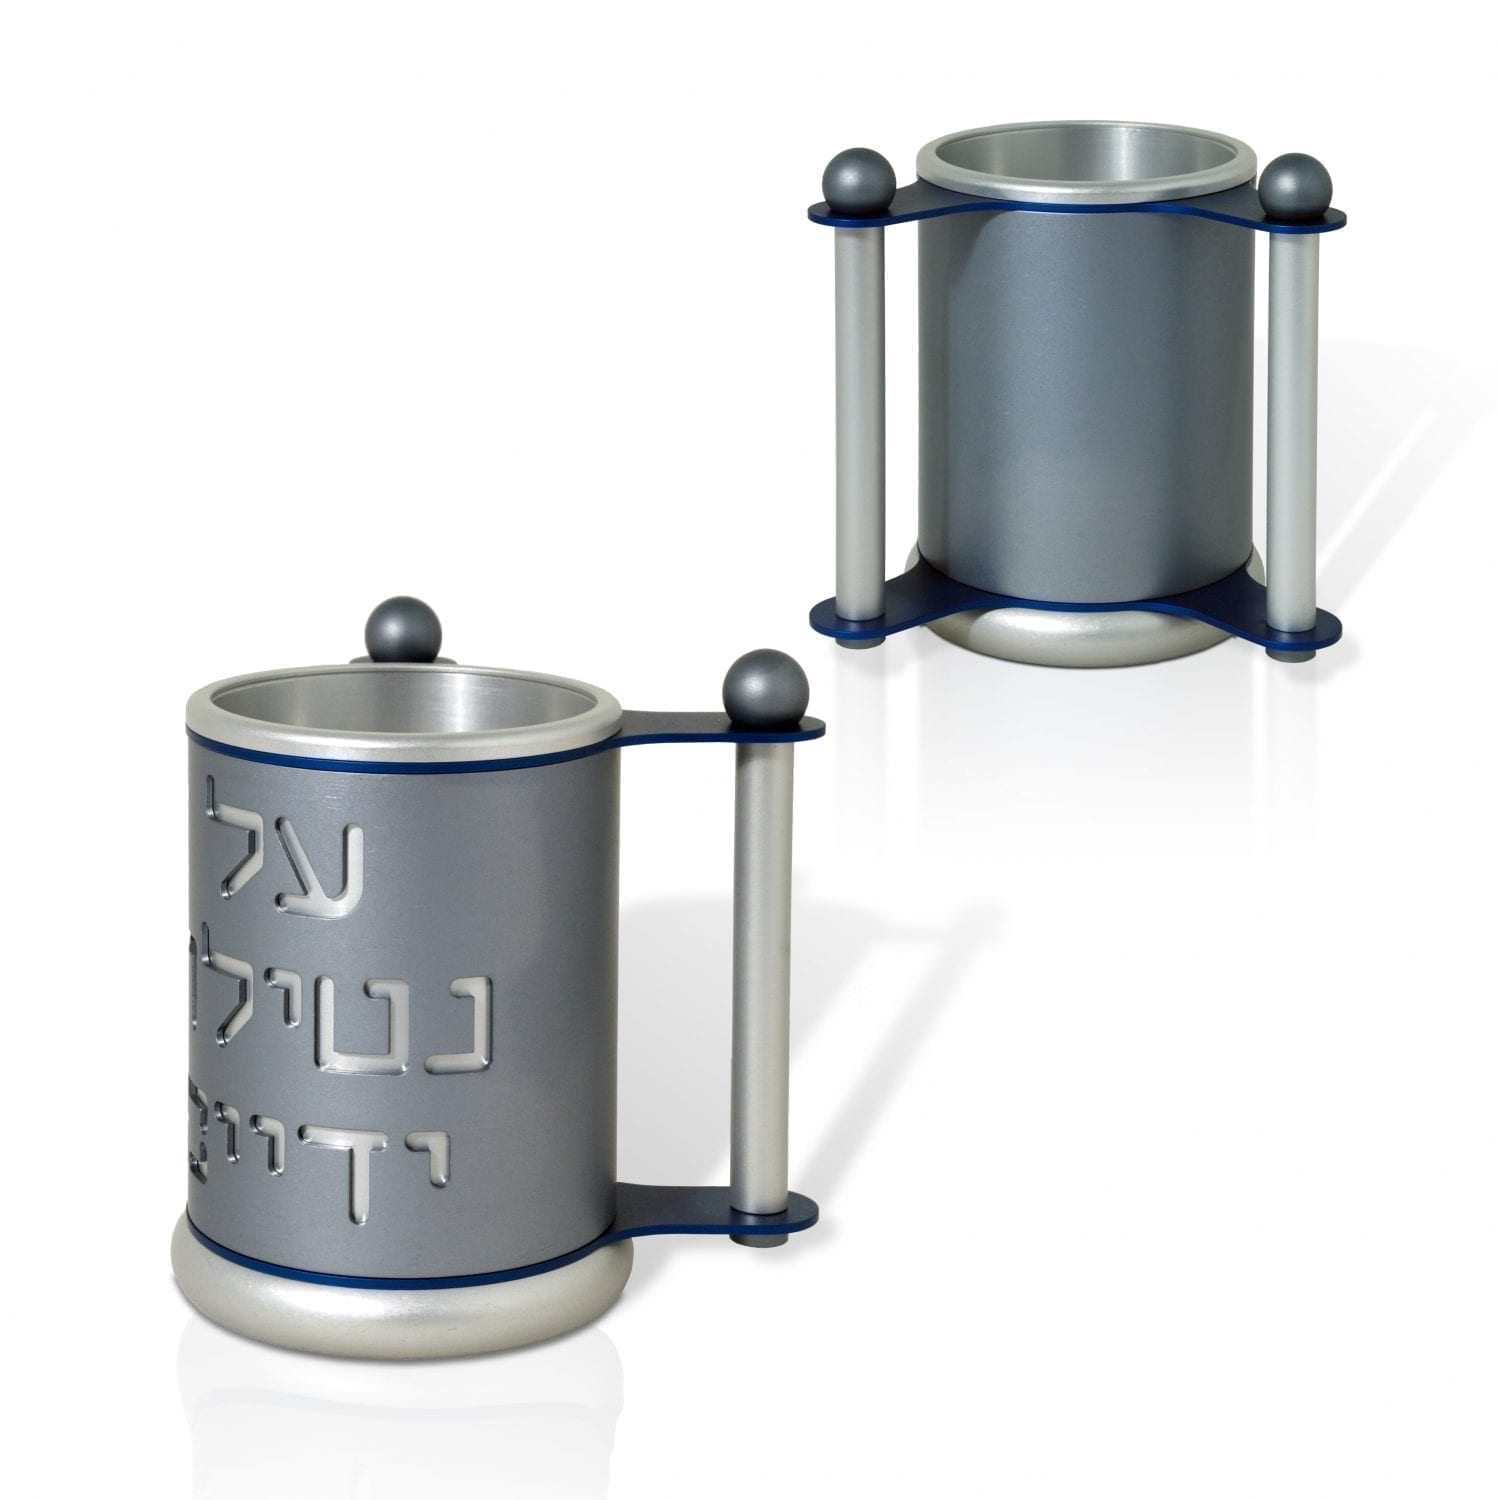 Modern colorful netilat yadayim washing cup, anodized aluminum Judaica made in Israel by Nadav Art